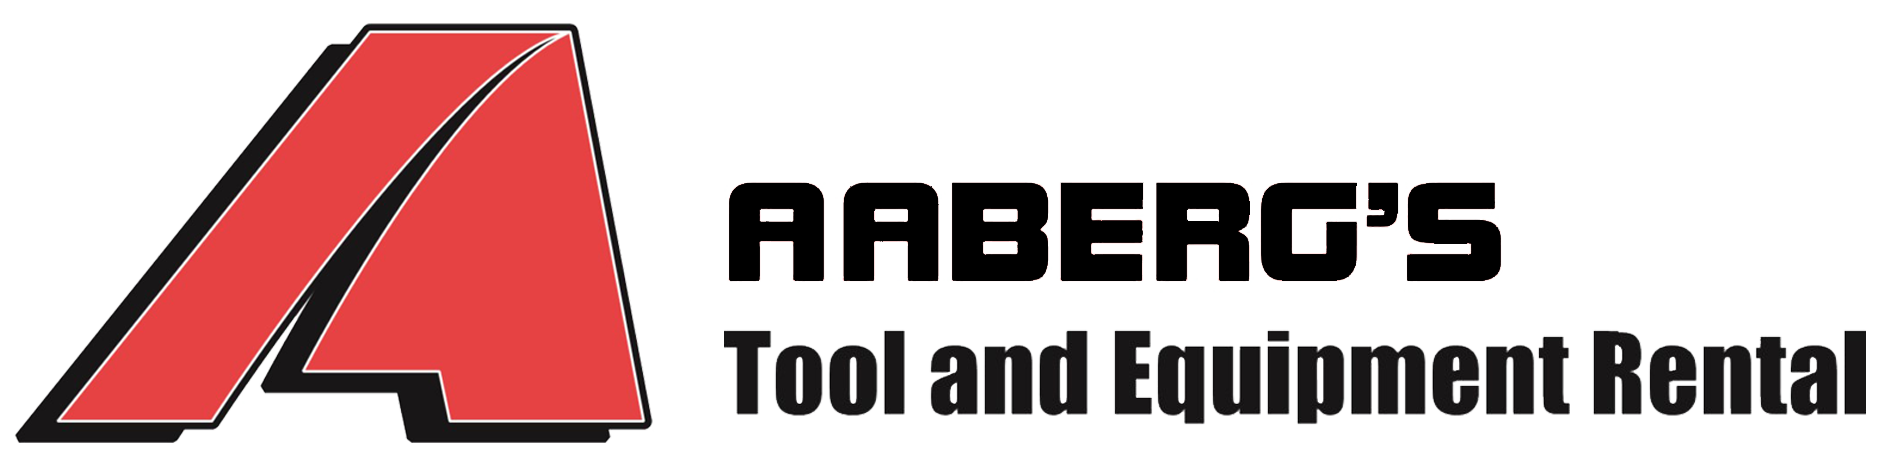 Aabergs Tool and Equipment Rental - Tacoma, Seattle, and Puget Sound